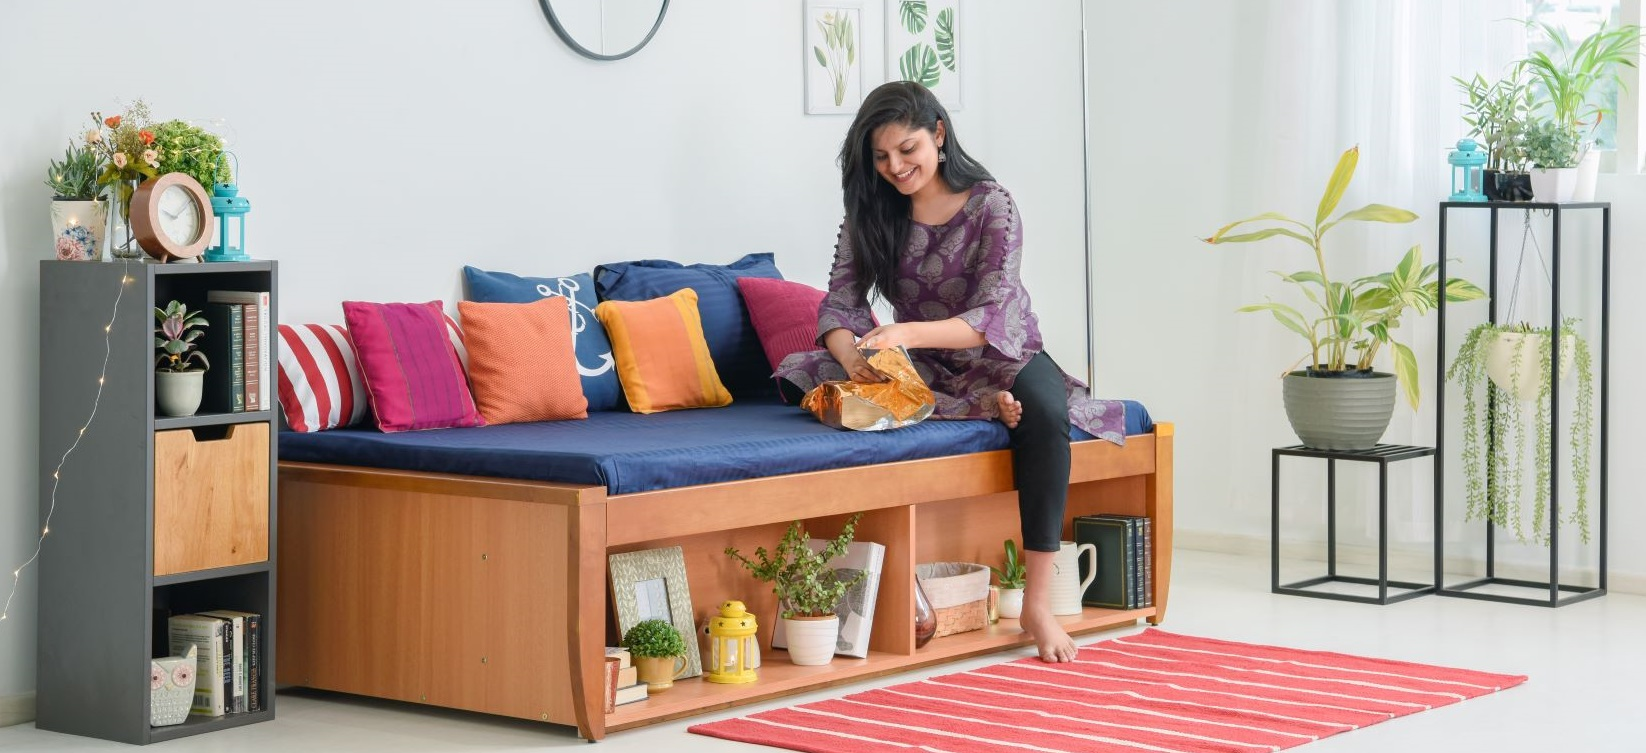 Arrange Living Room Furniture- Accessibility